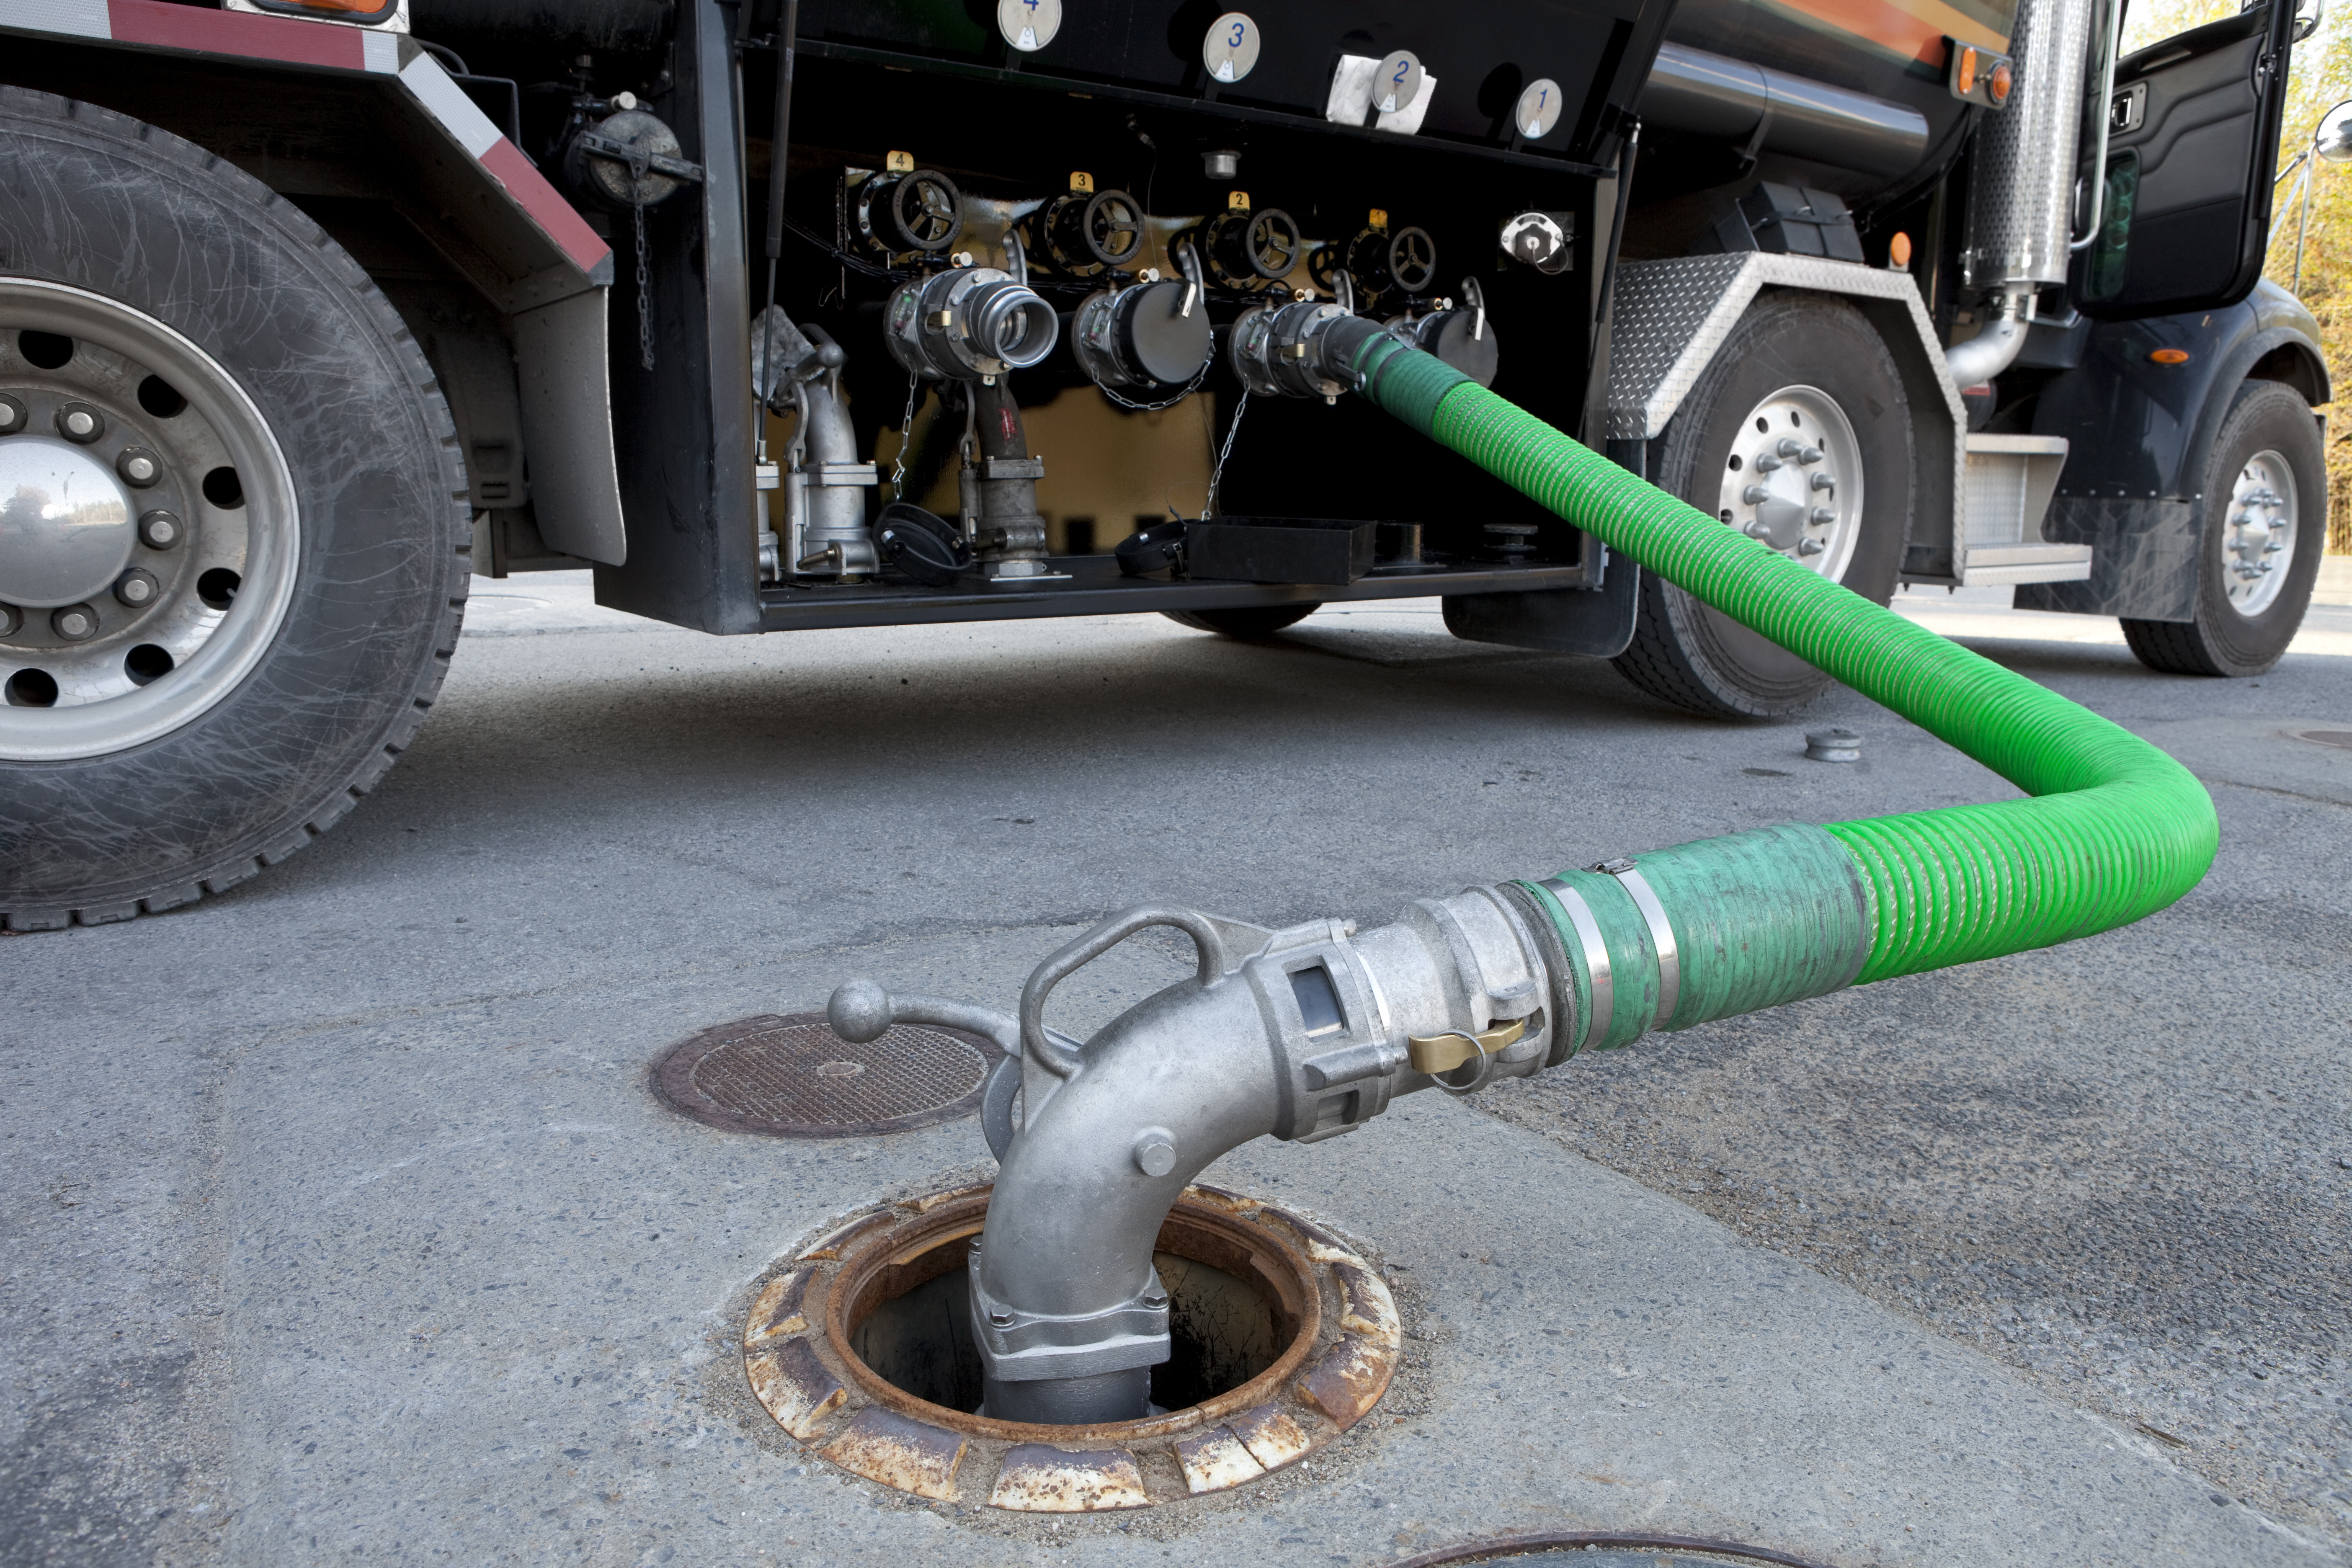 We help you properly maintain the septic tanks and provide safe disposal of the sewage.